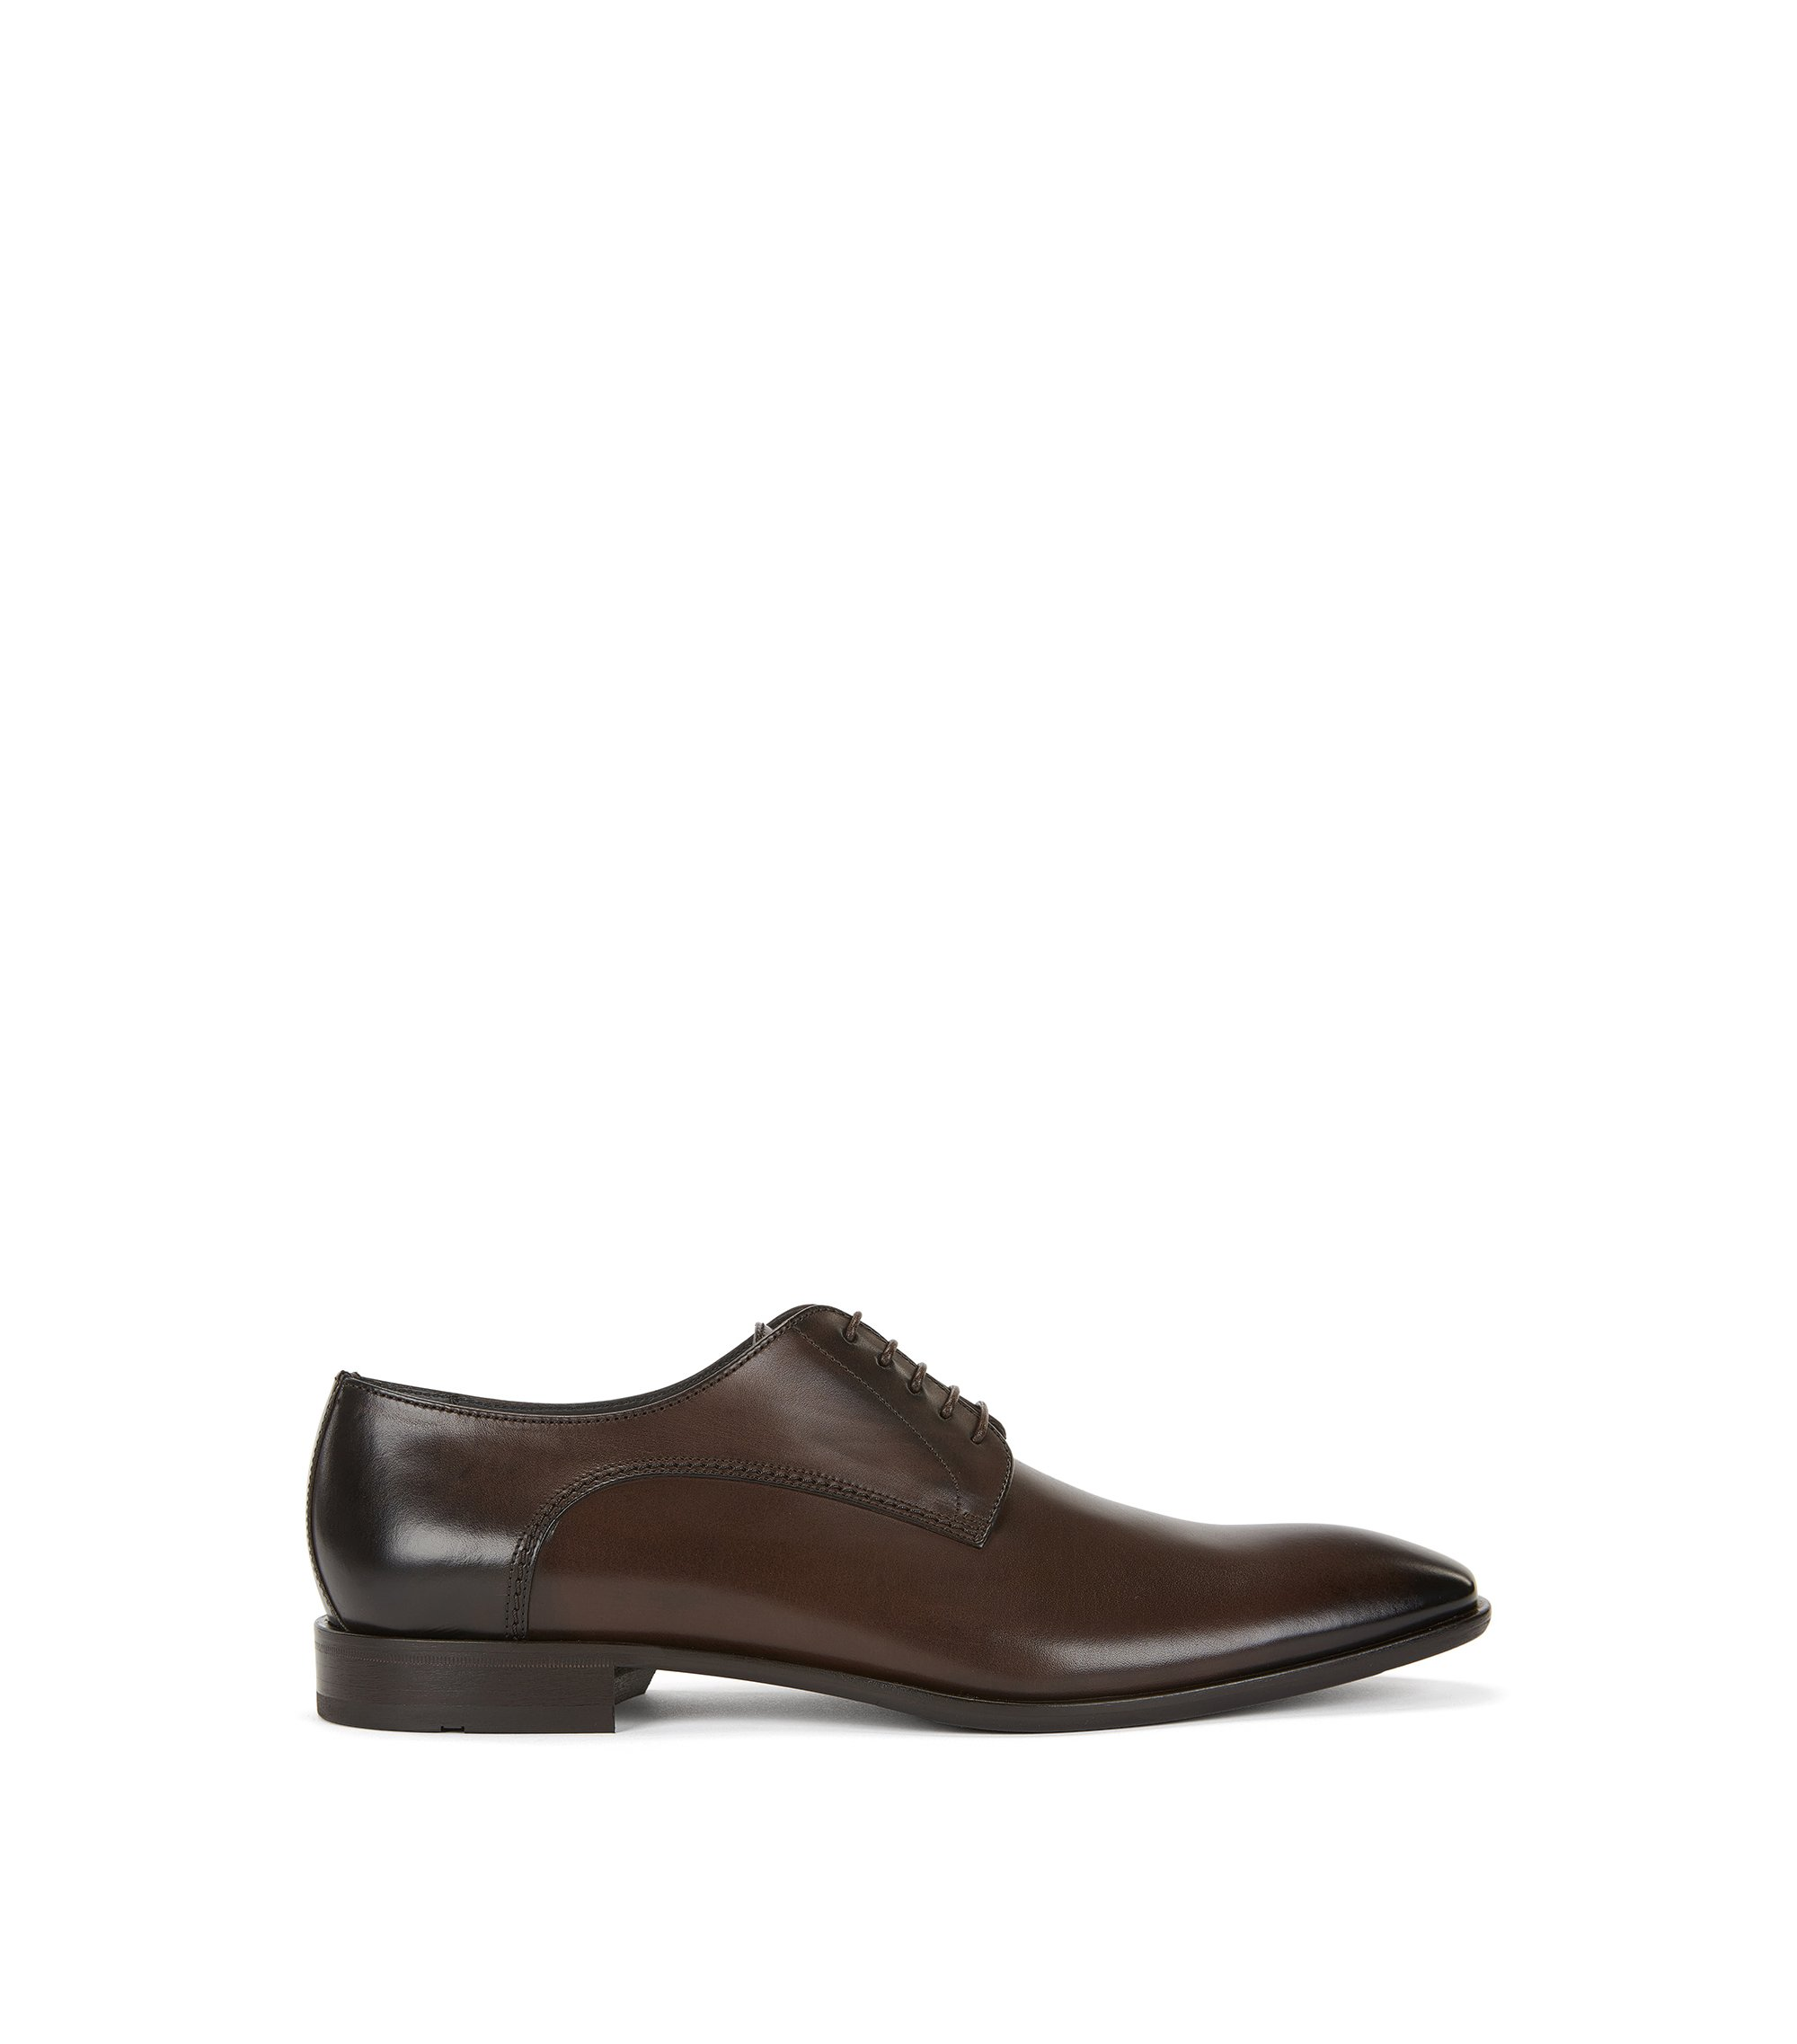 Leather Oxford shoes with antique finish, Dark Brown